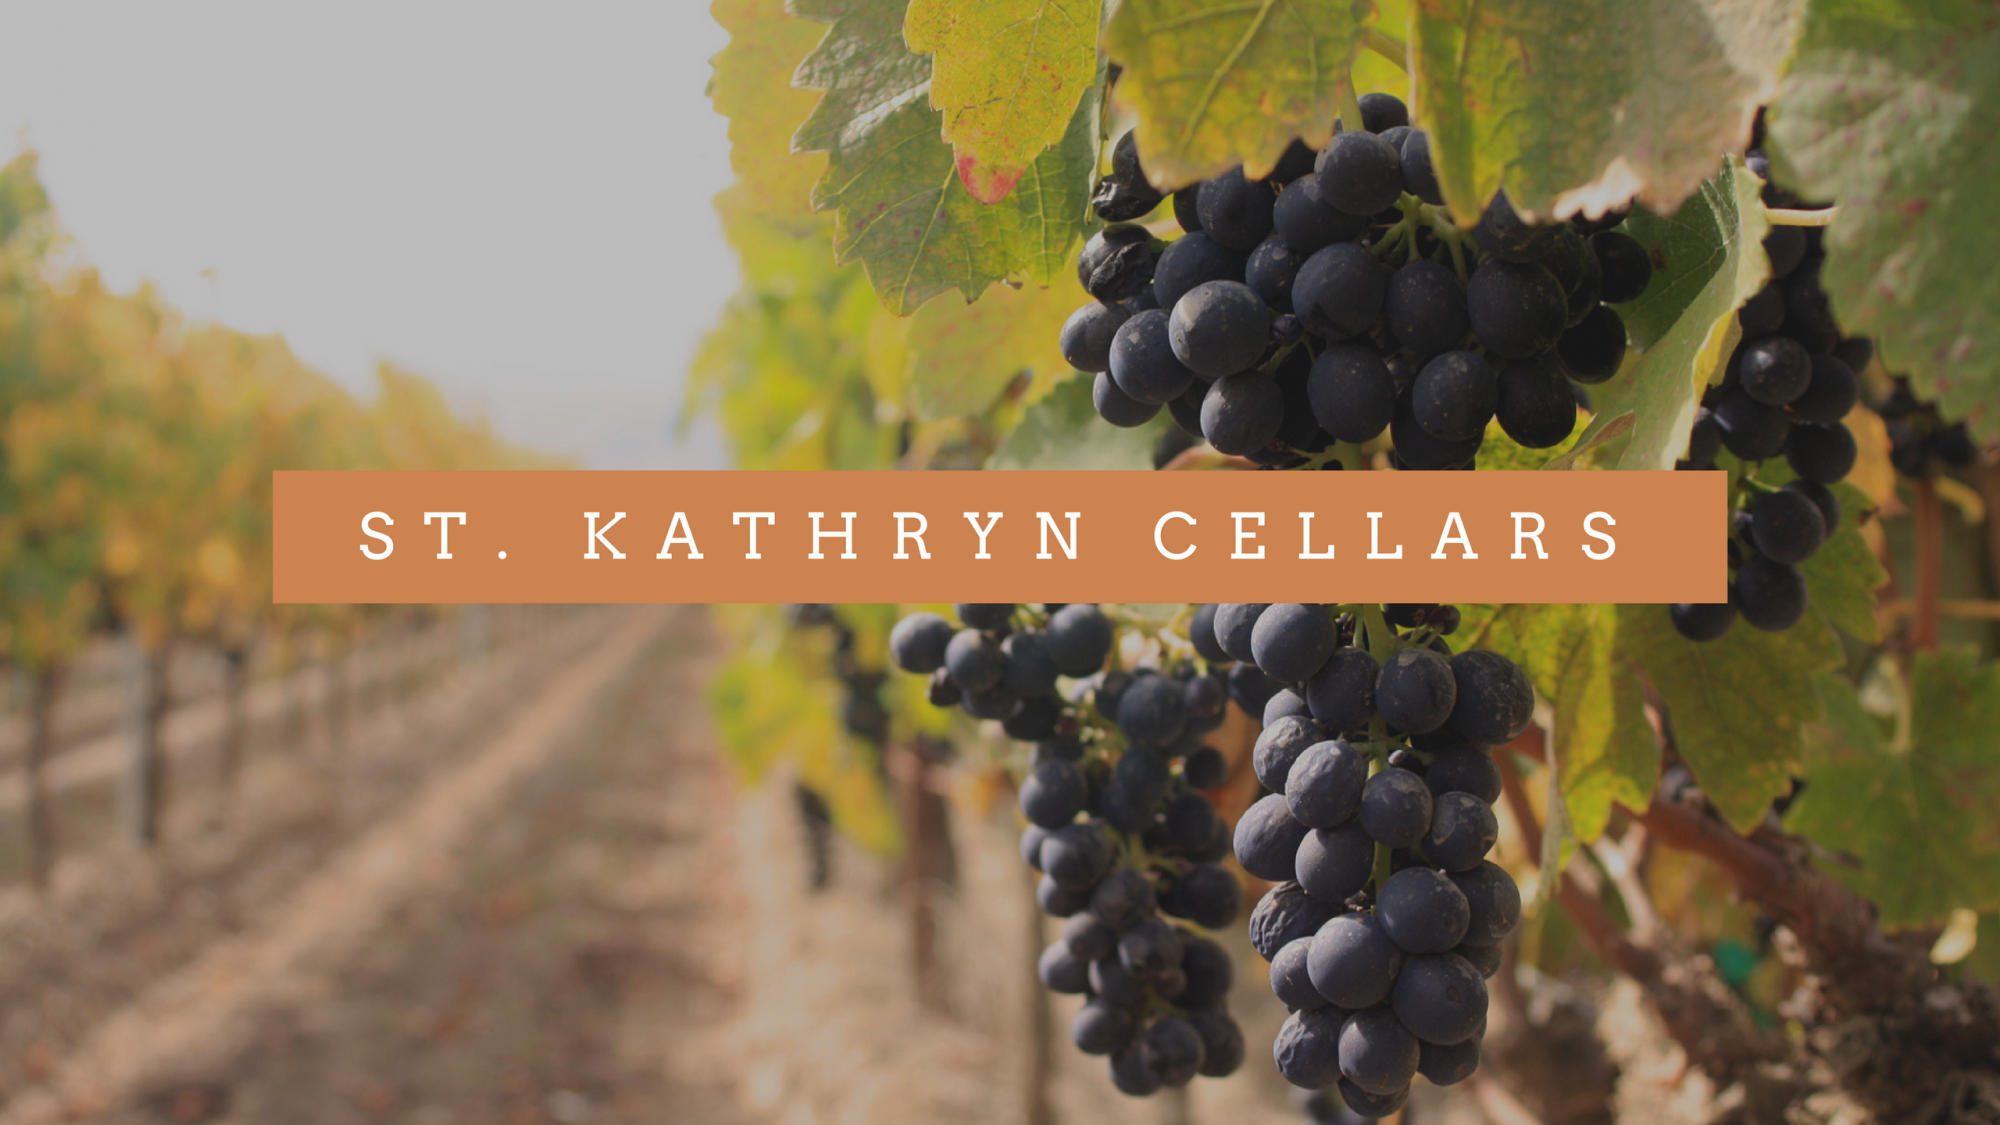 St Kathryn Cellars